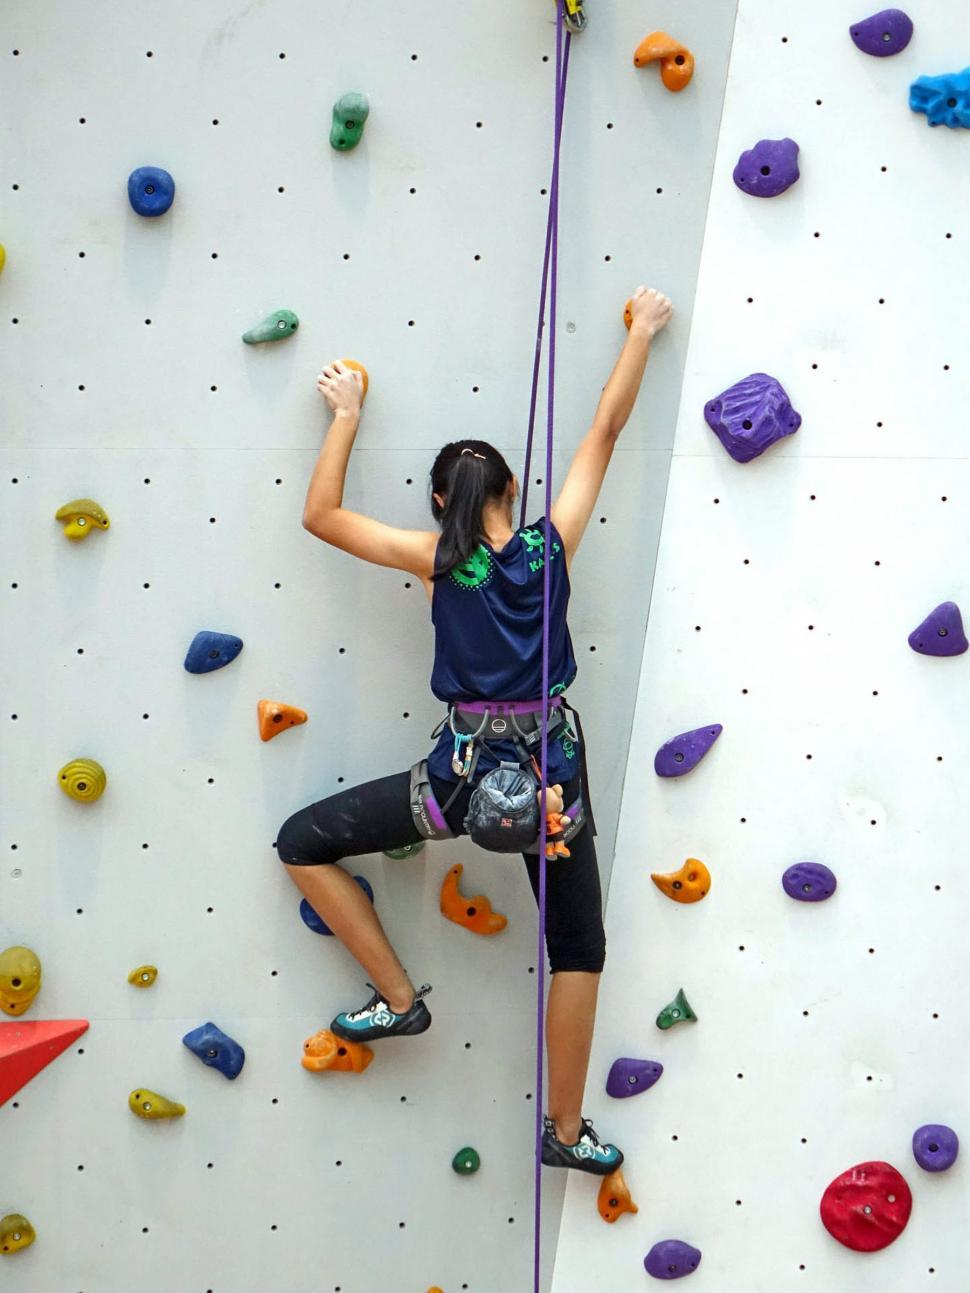 Download Free Stock Photo of Wall Climbing with ropes